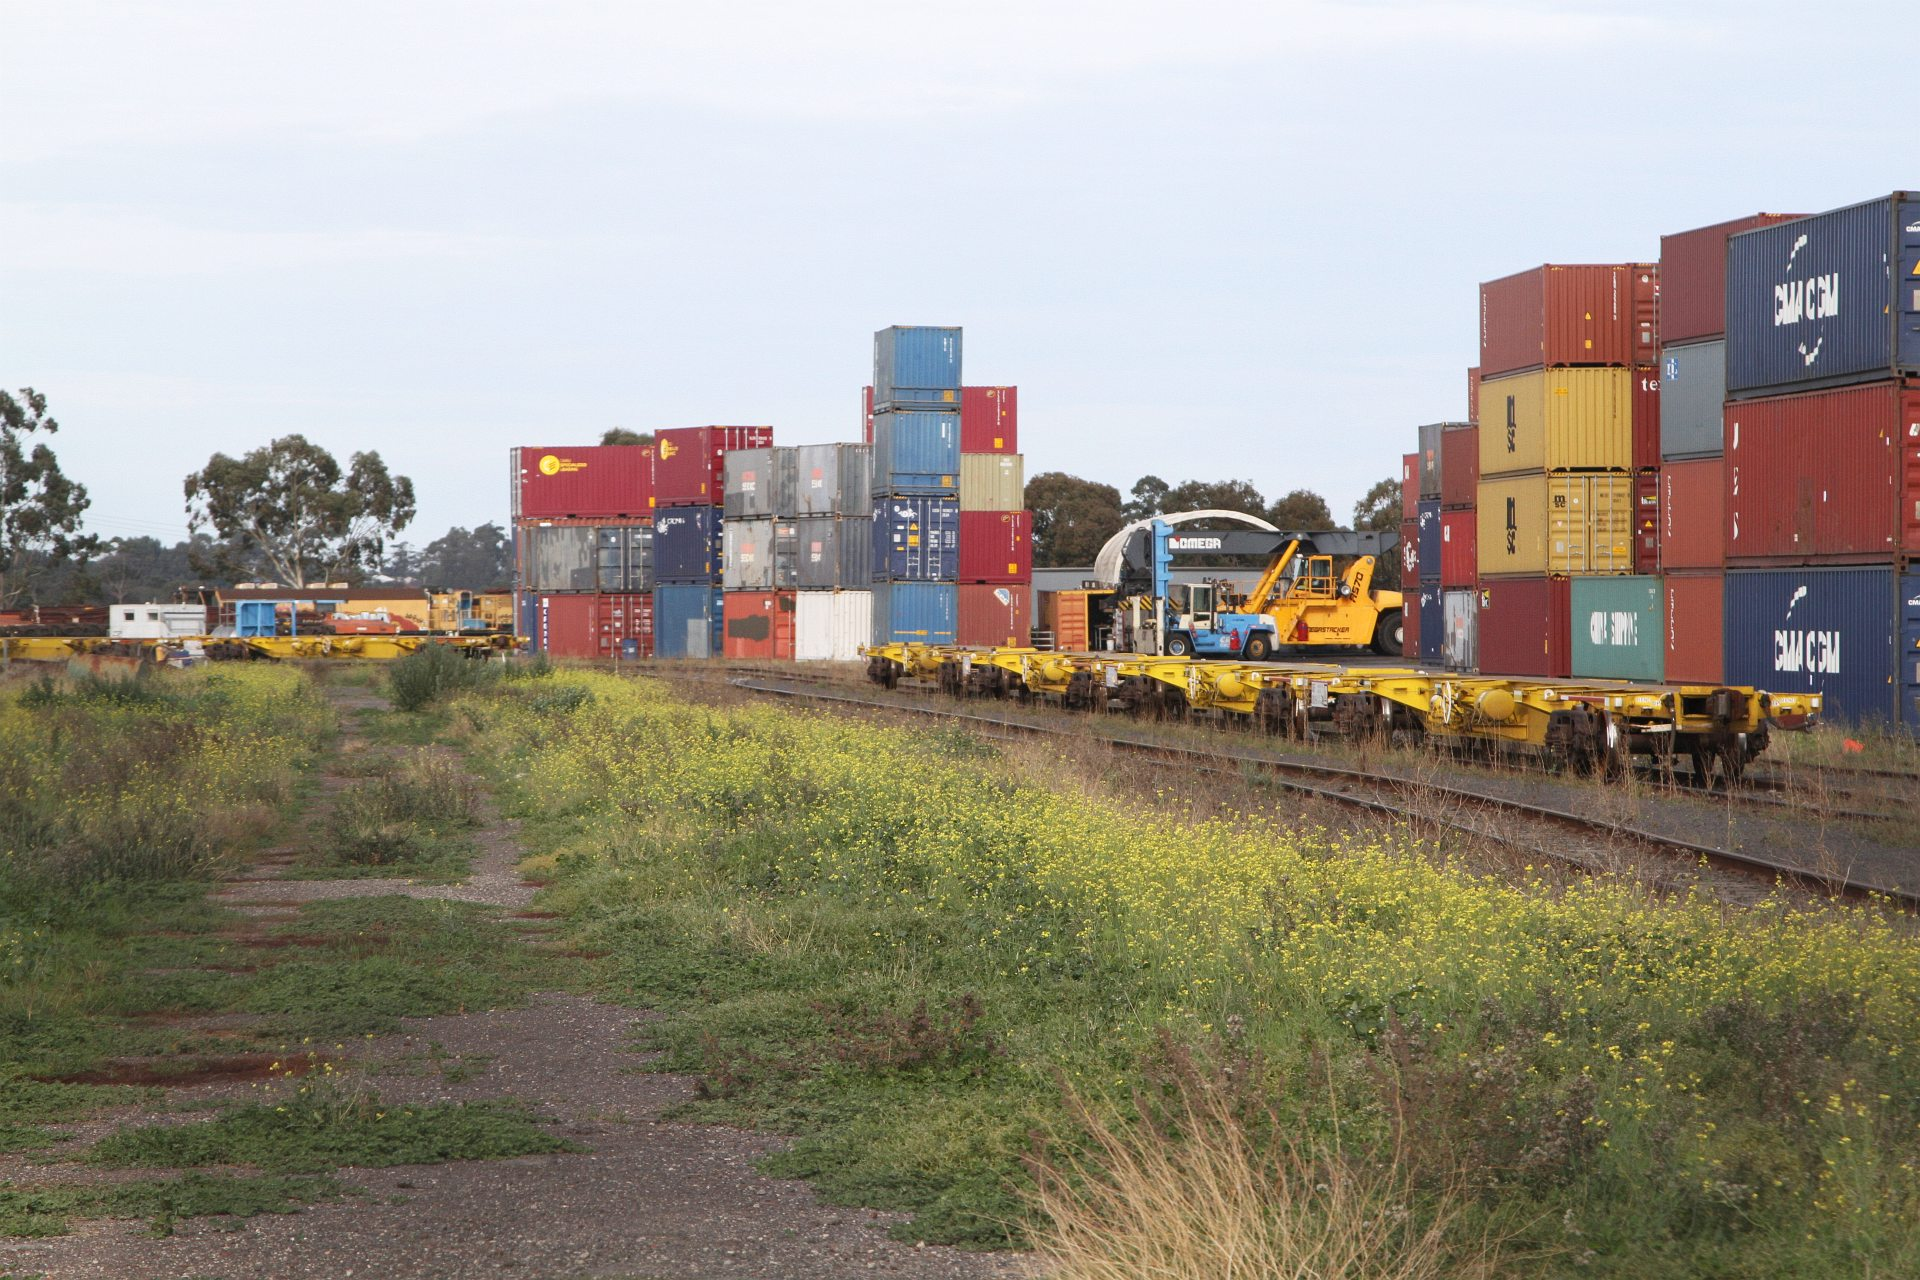 80 Foot Qube Container Wagons Stored In The Former Crt